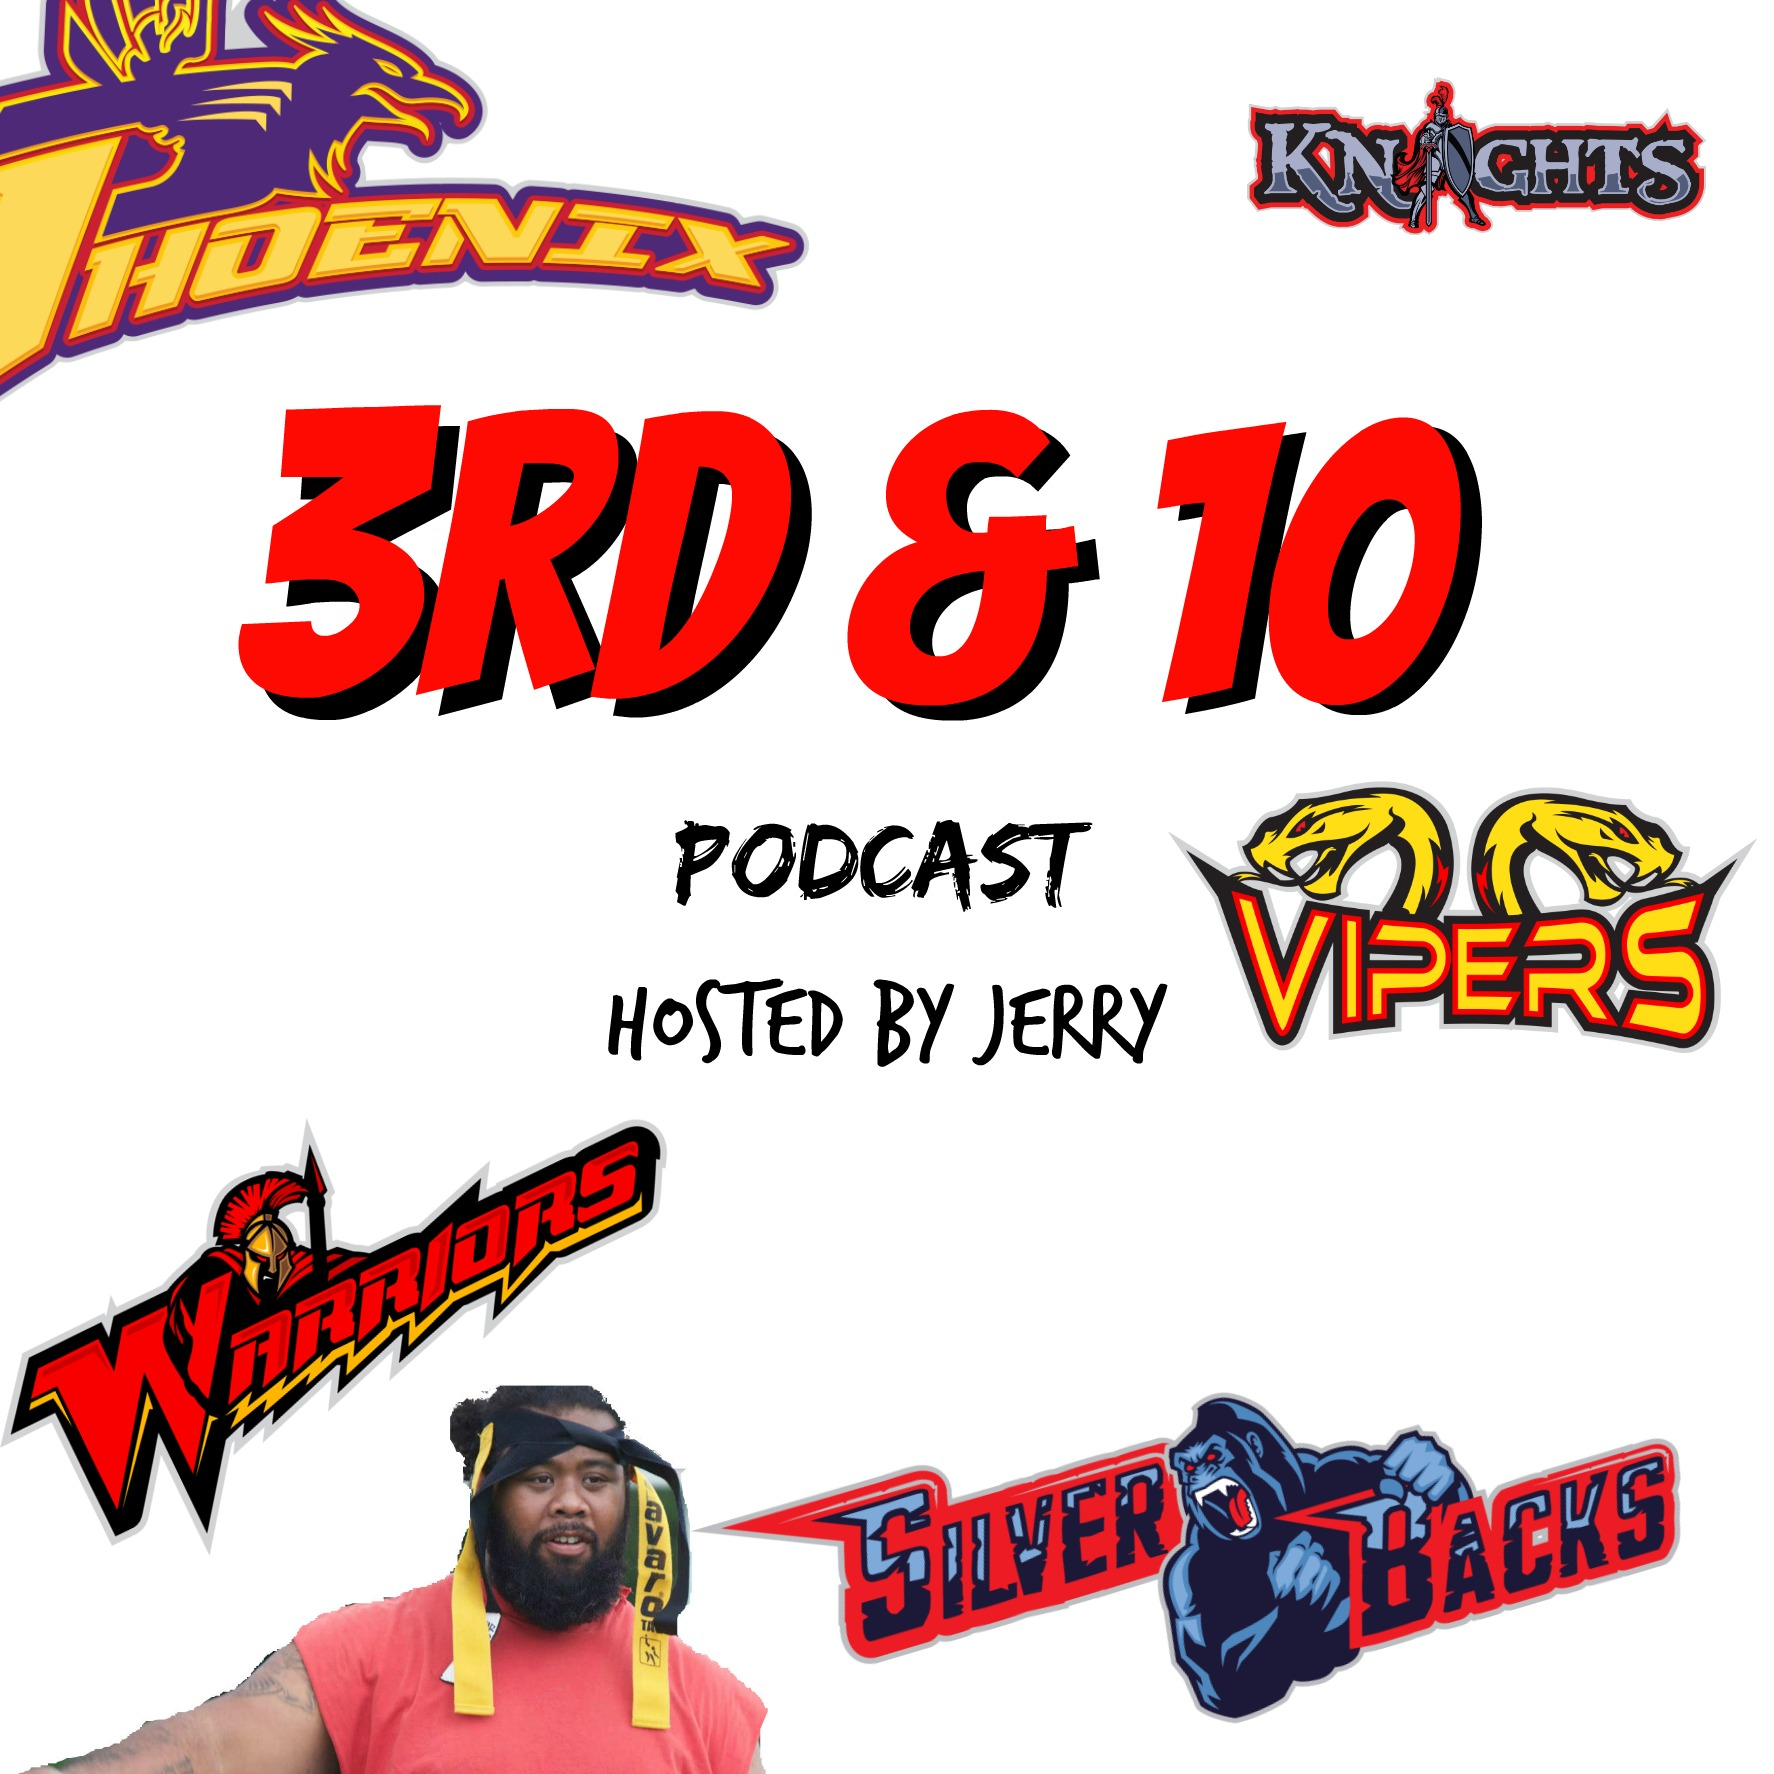 The 3rd & 10 Podcast